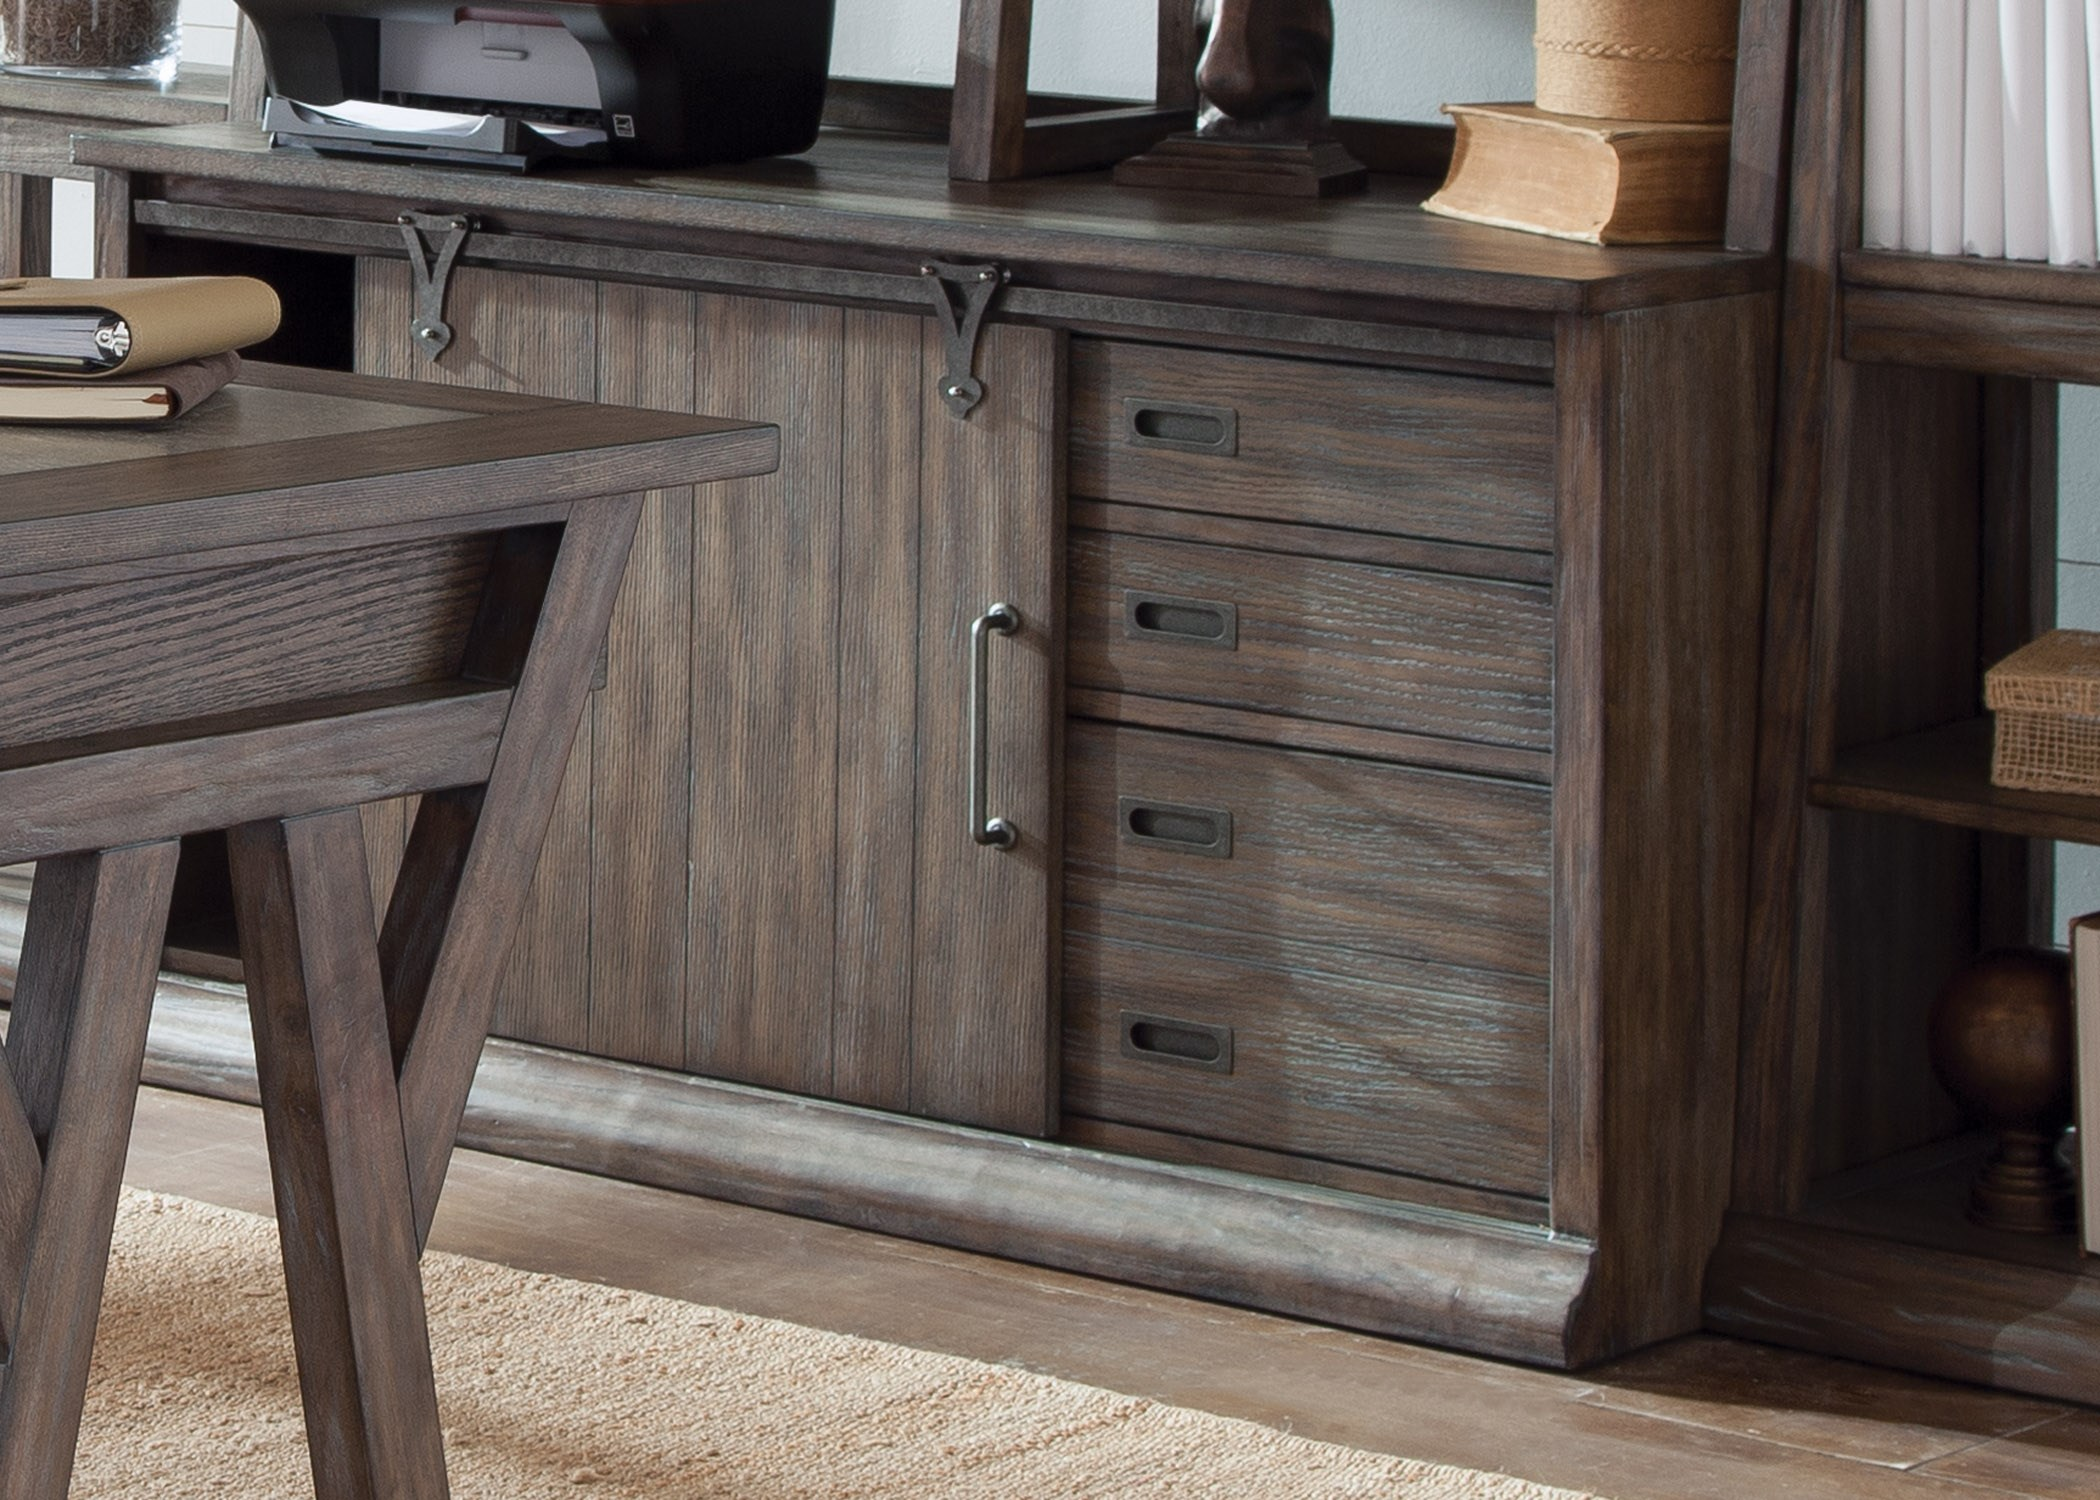 Genial Liberty Furniture Stone Brook Computer Credenza In Distressed Wood Finish